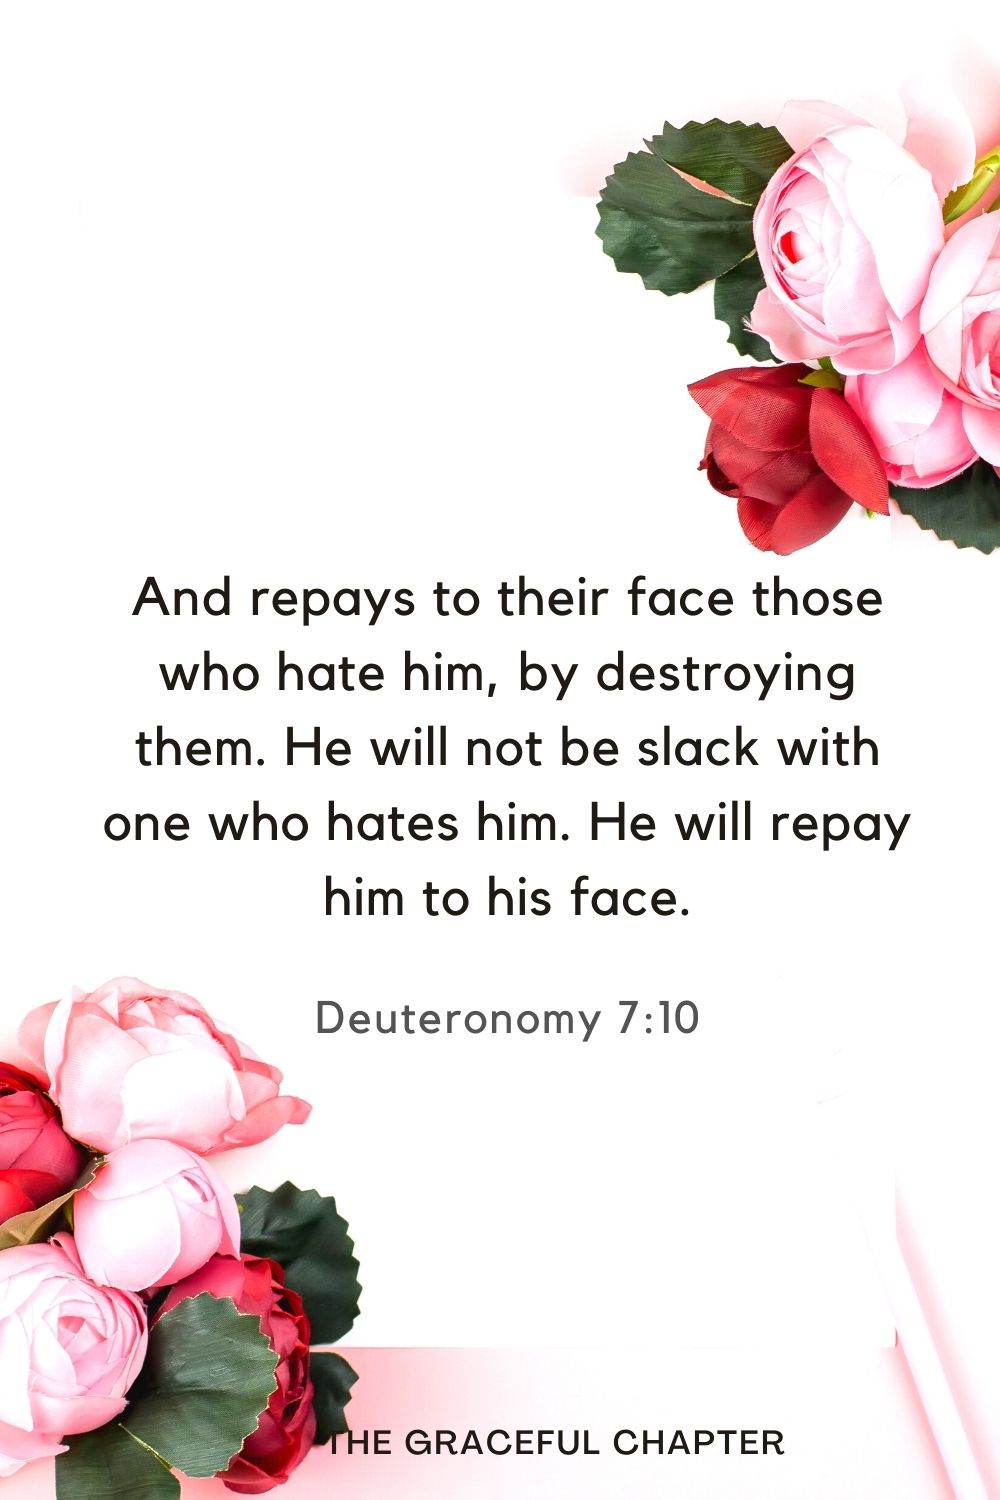 And repays to their face those who hate him, by destroying them. He will not be slack with one who hates him. He will repay him to his face. Deuteronomy 7:10